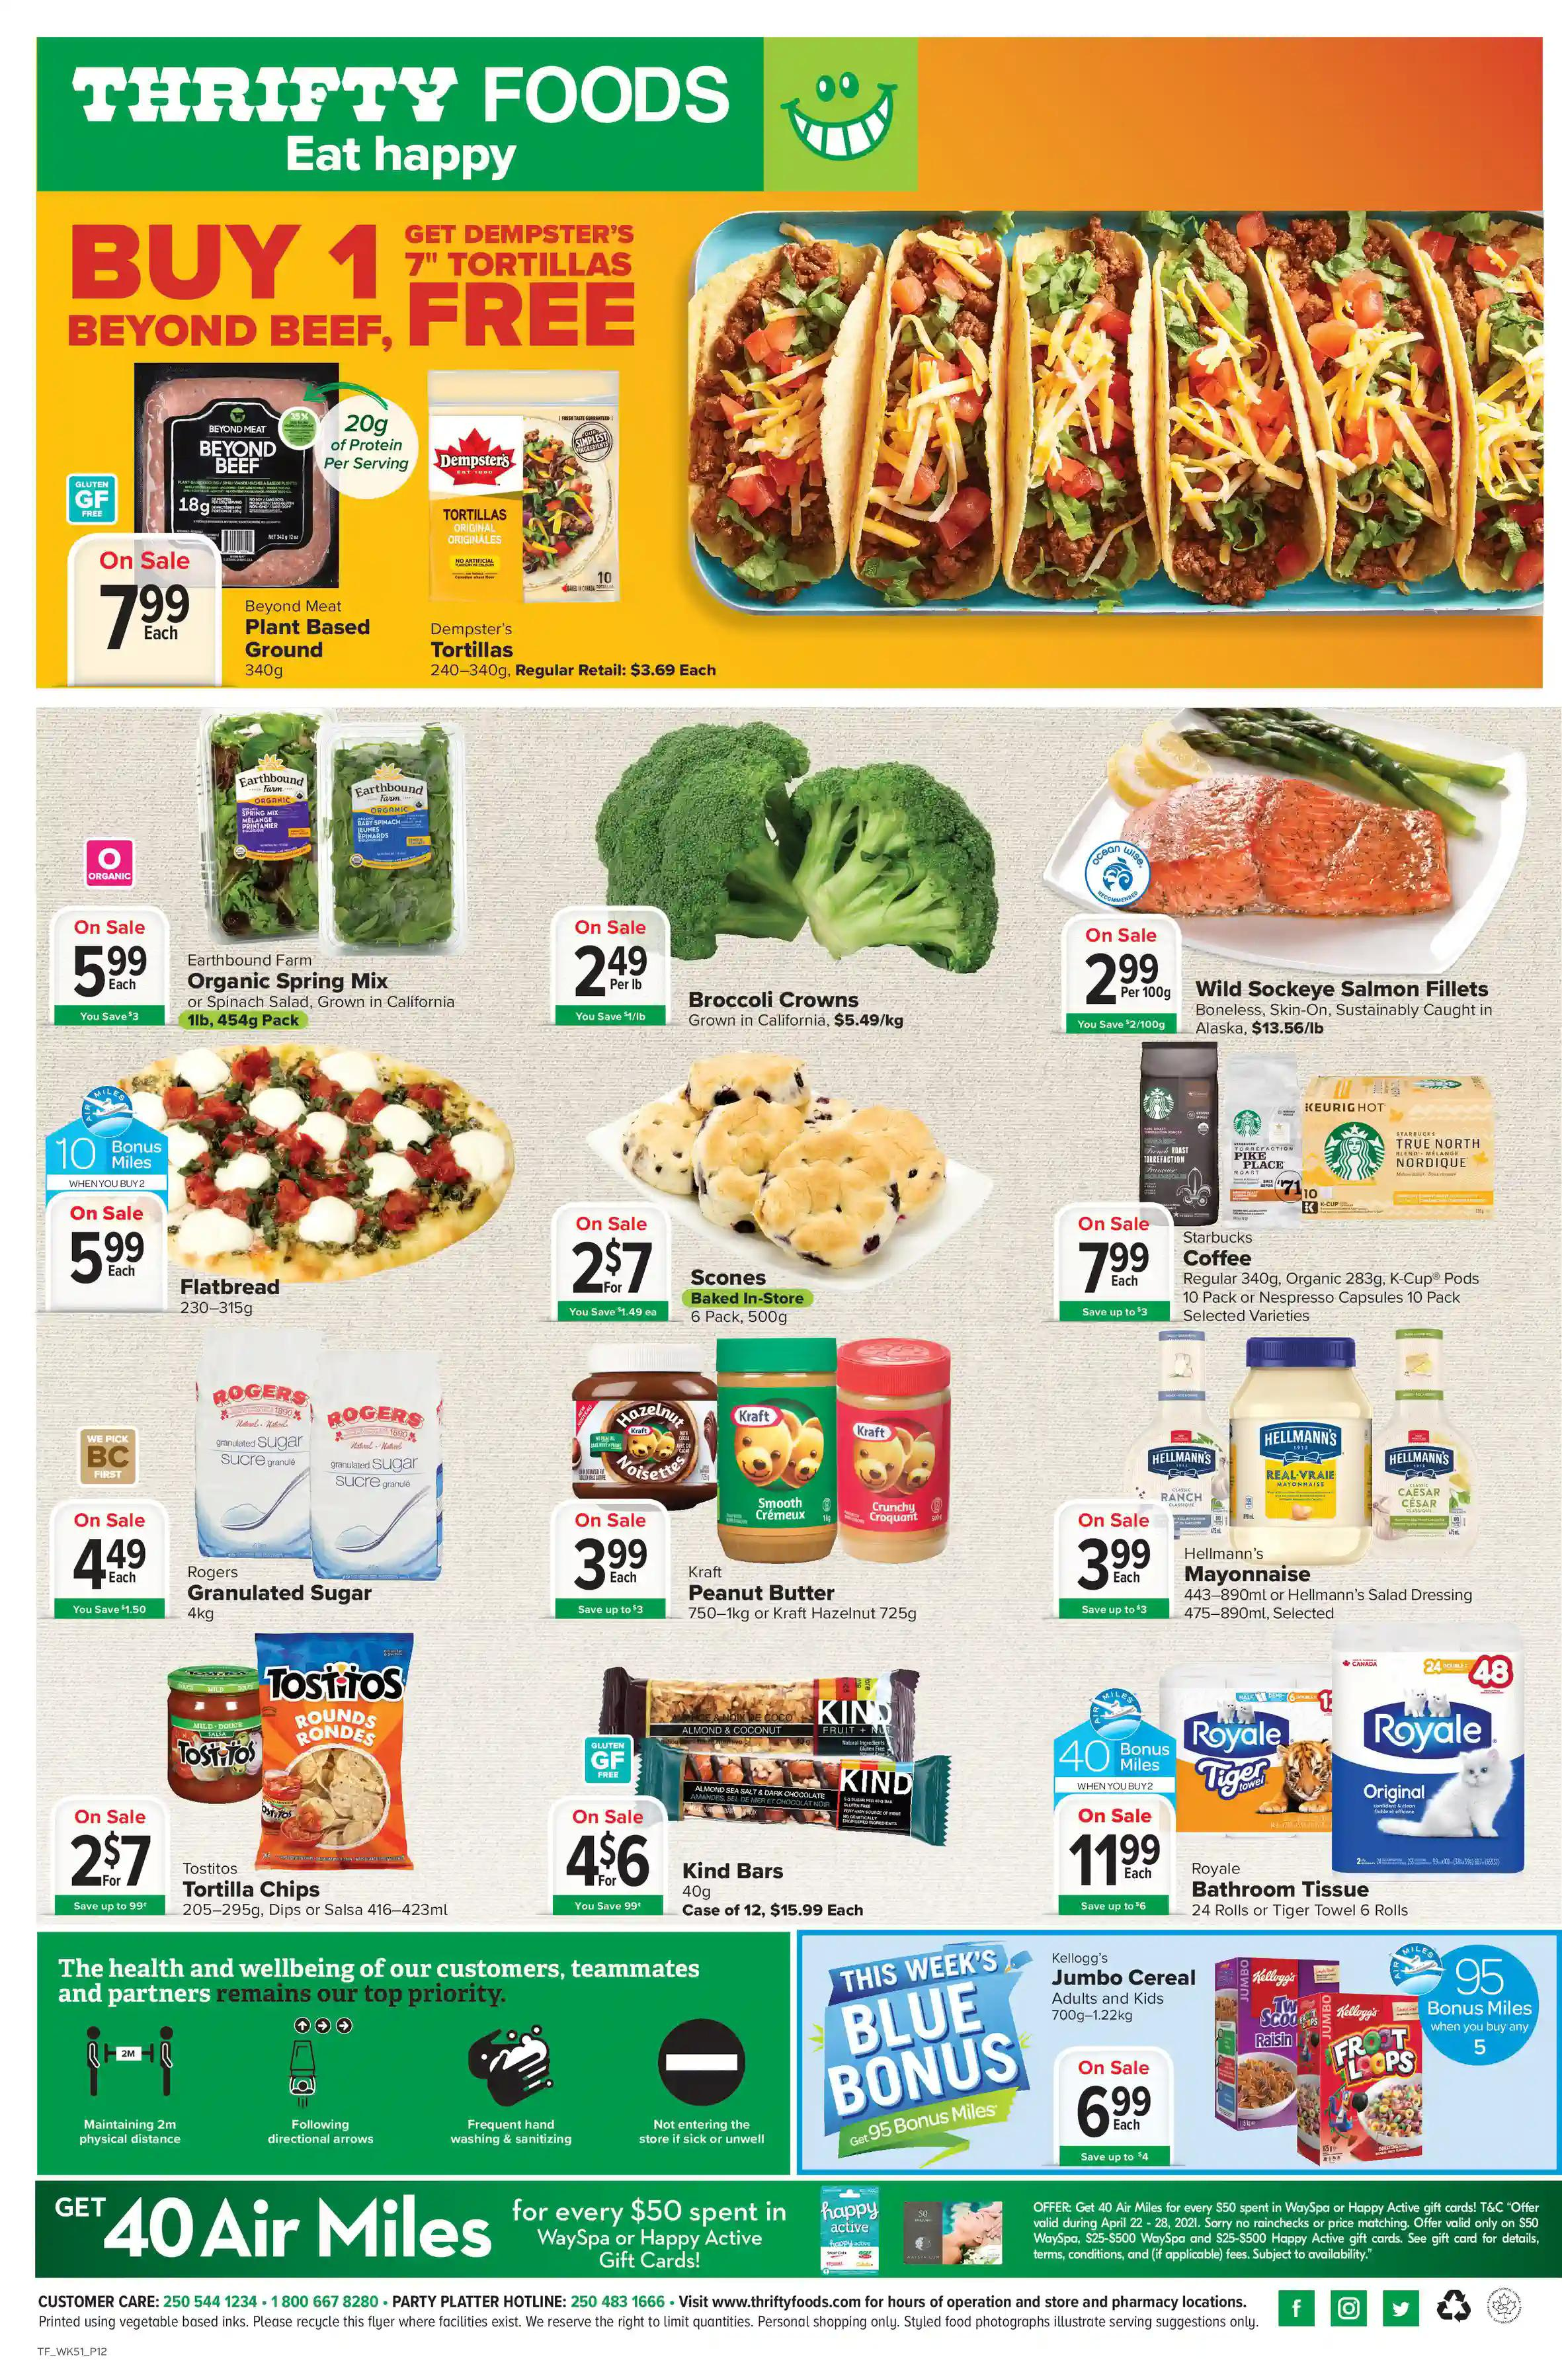 Thrifty Foods - Weekly Flyer Specials - Page 16